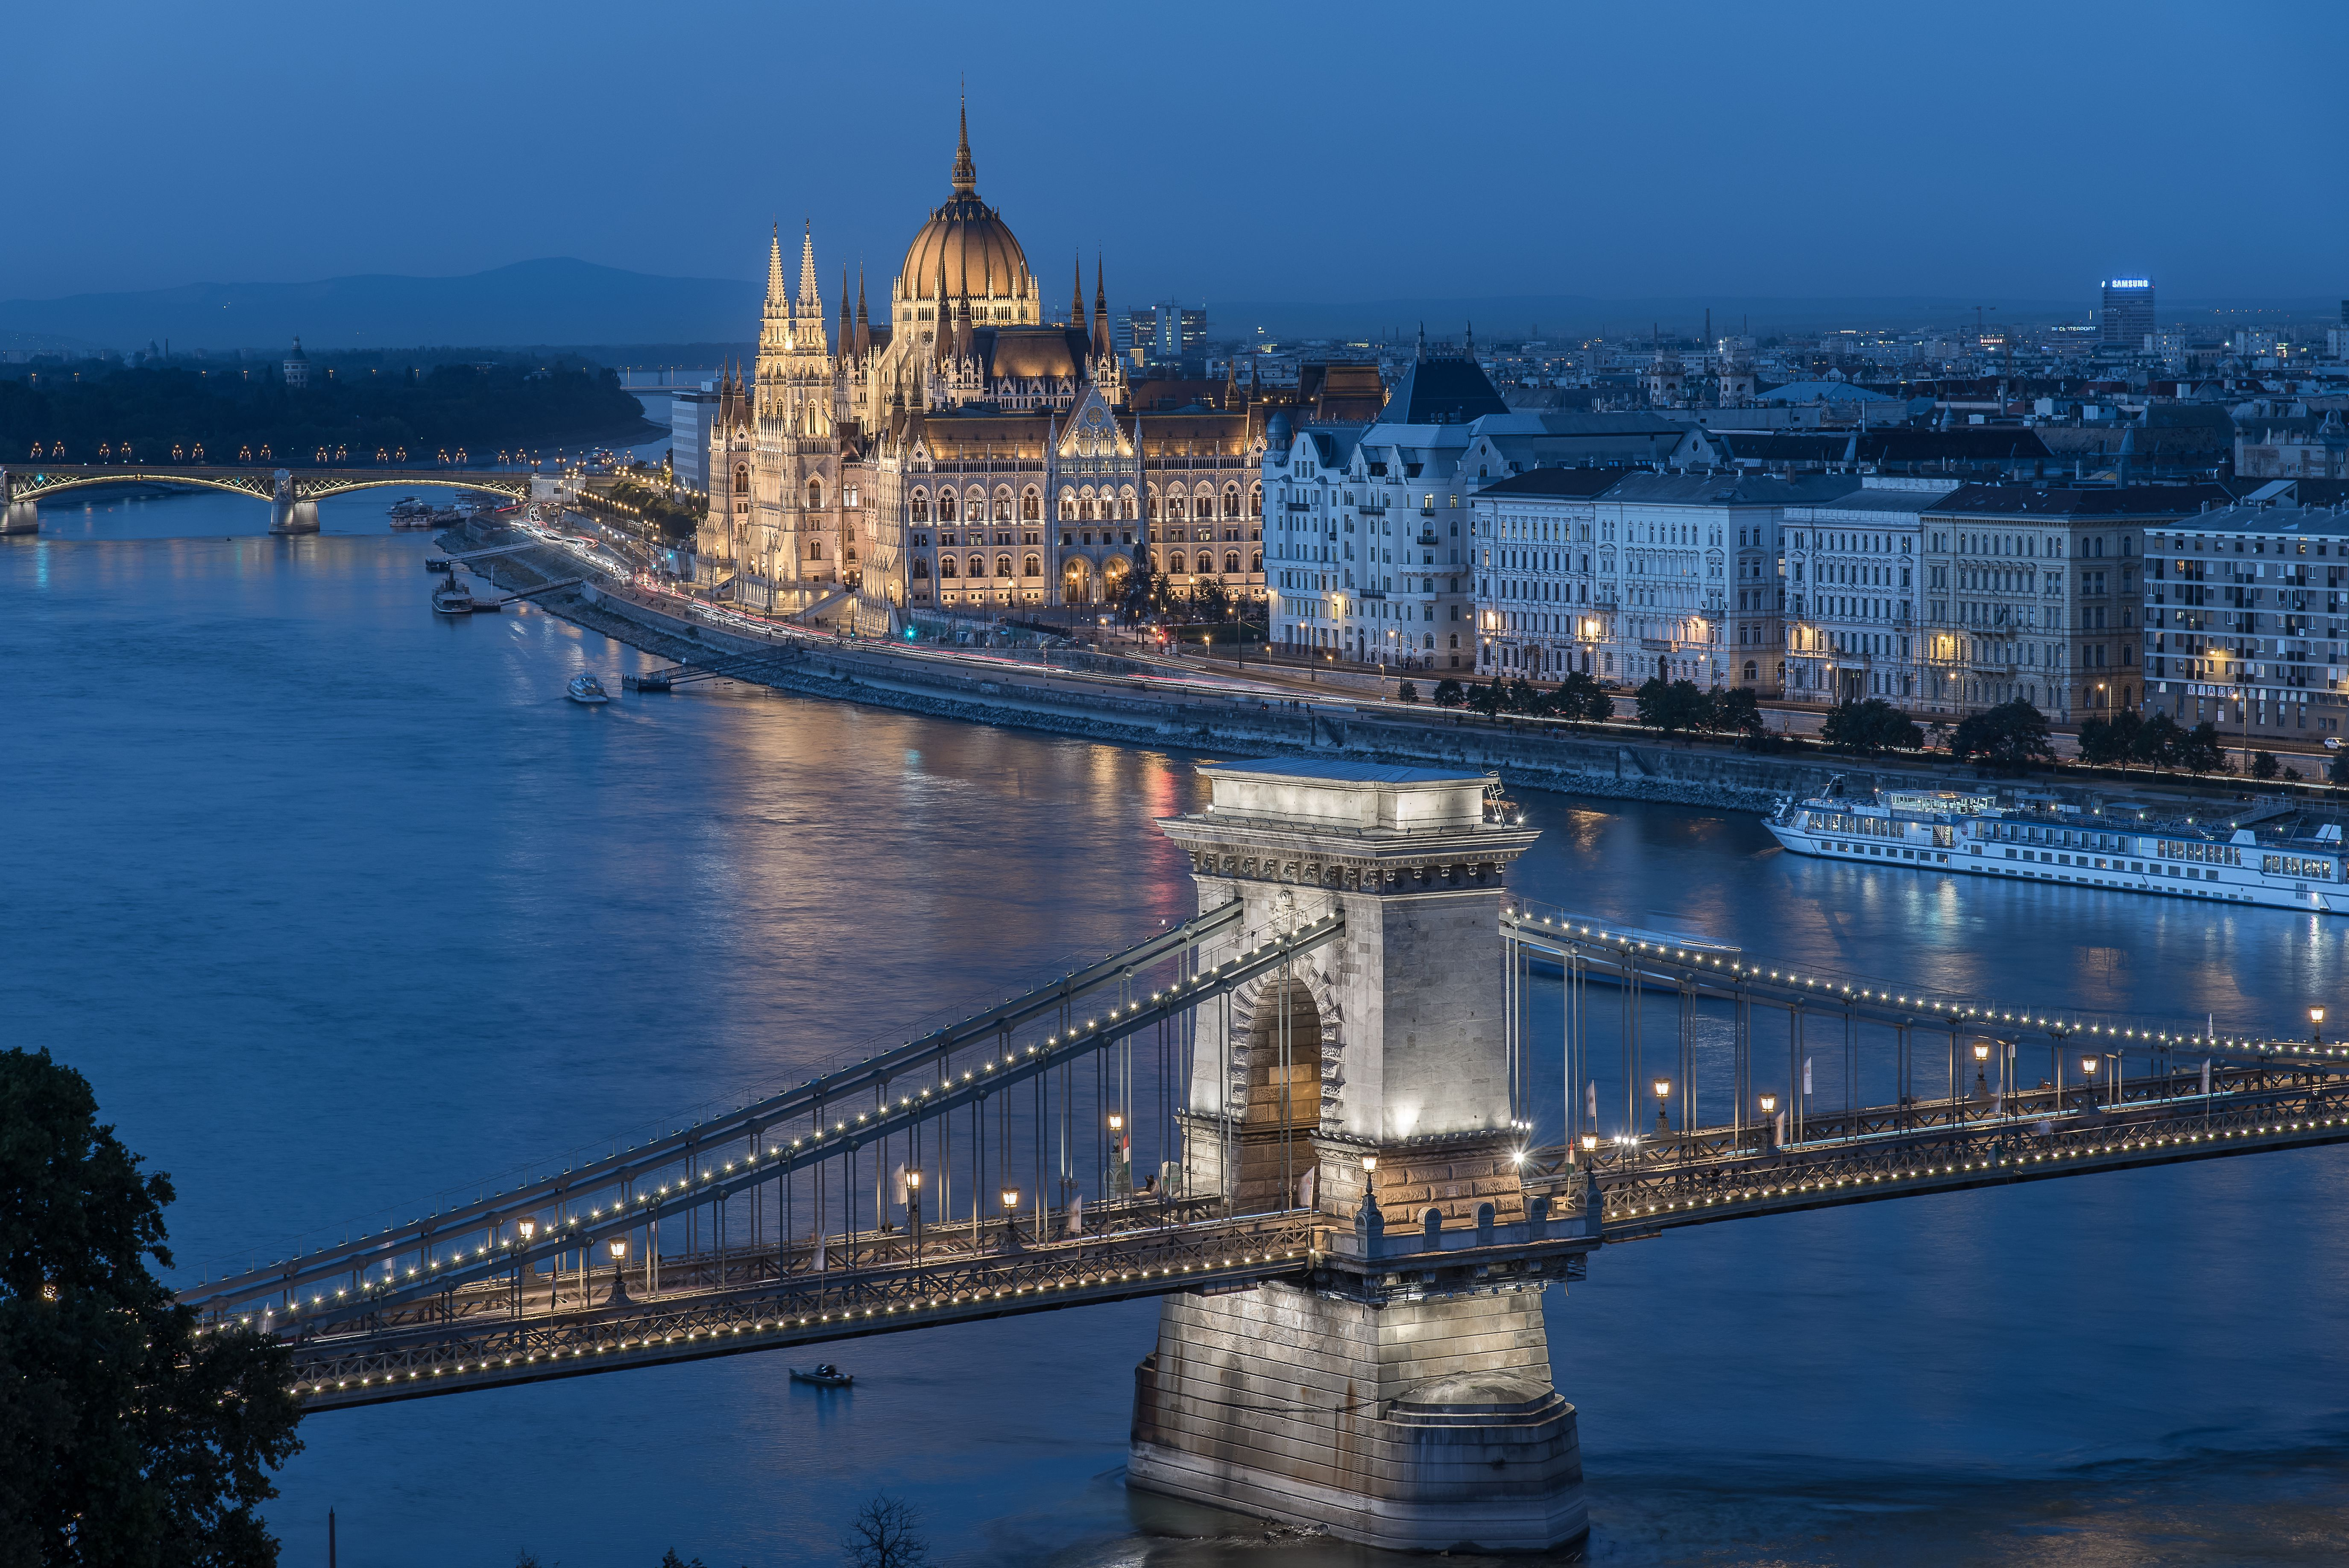 Amazing Cars Wallpapers Full Hd Hungarian Parliament Building Wallpapers Backgrounds